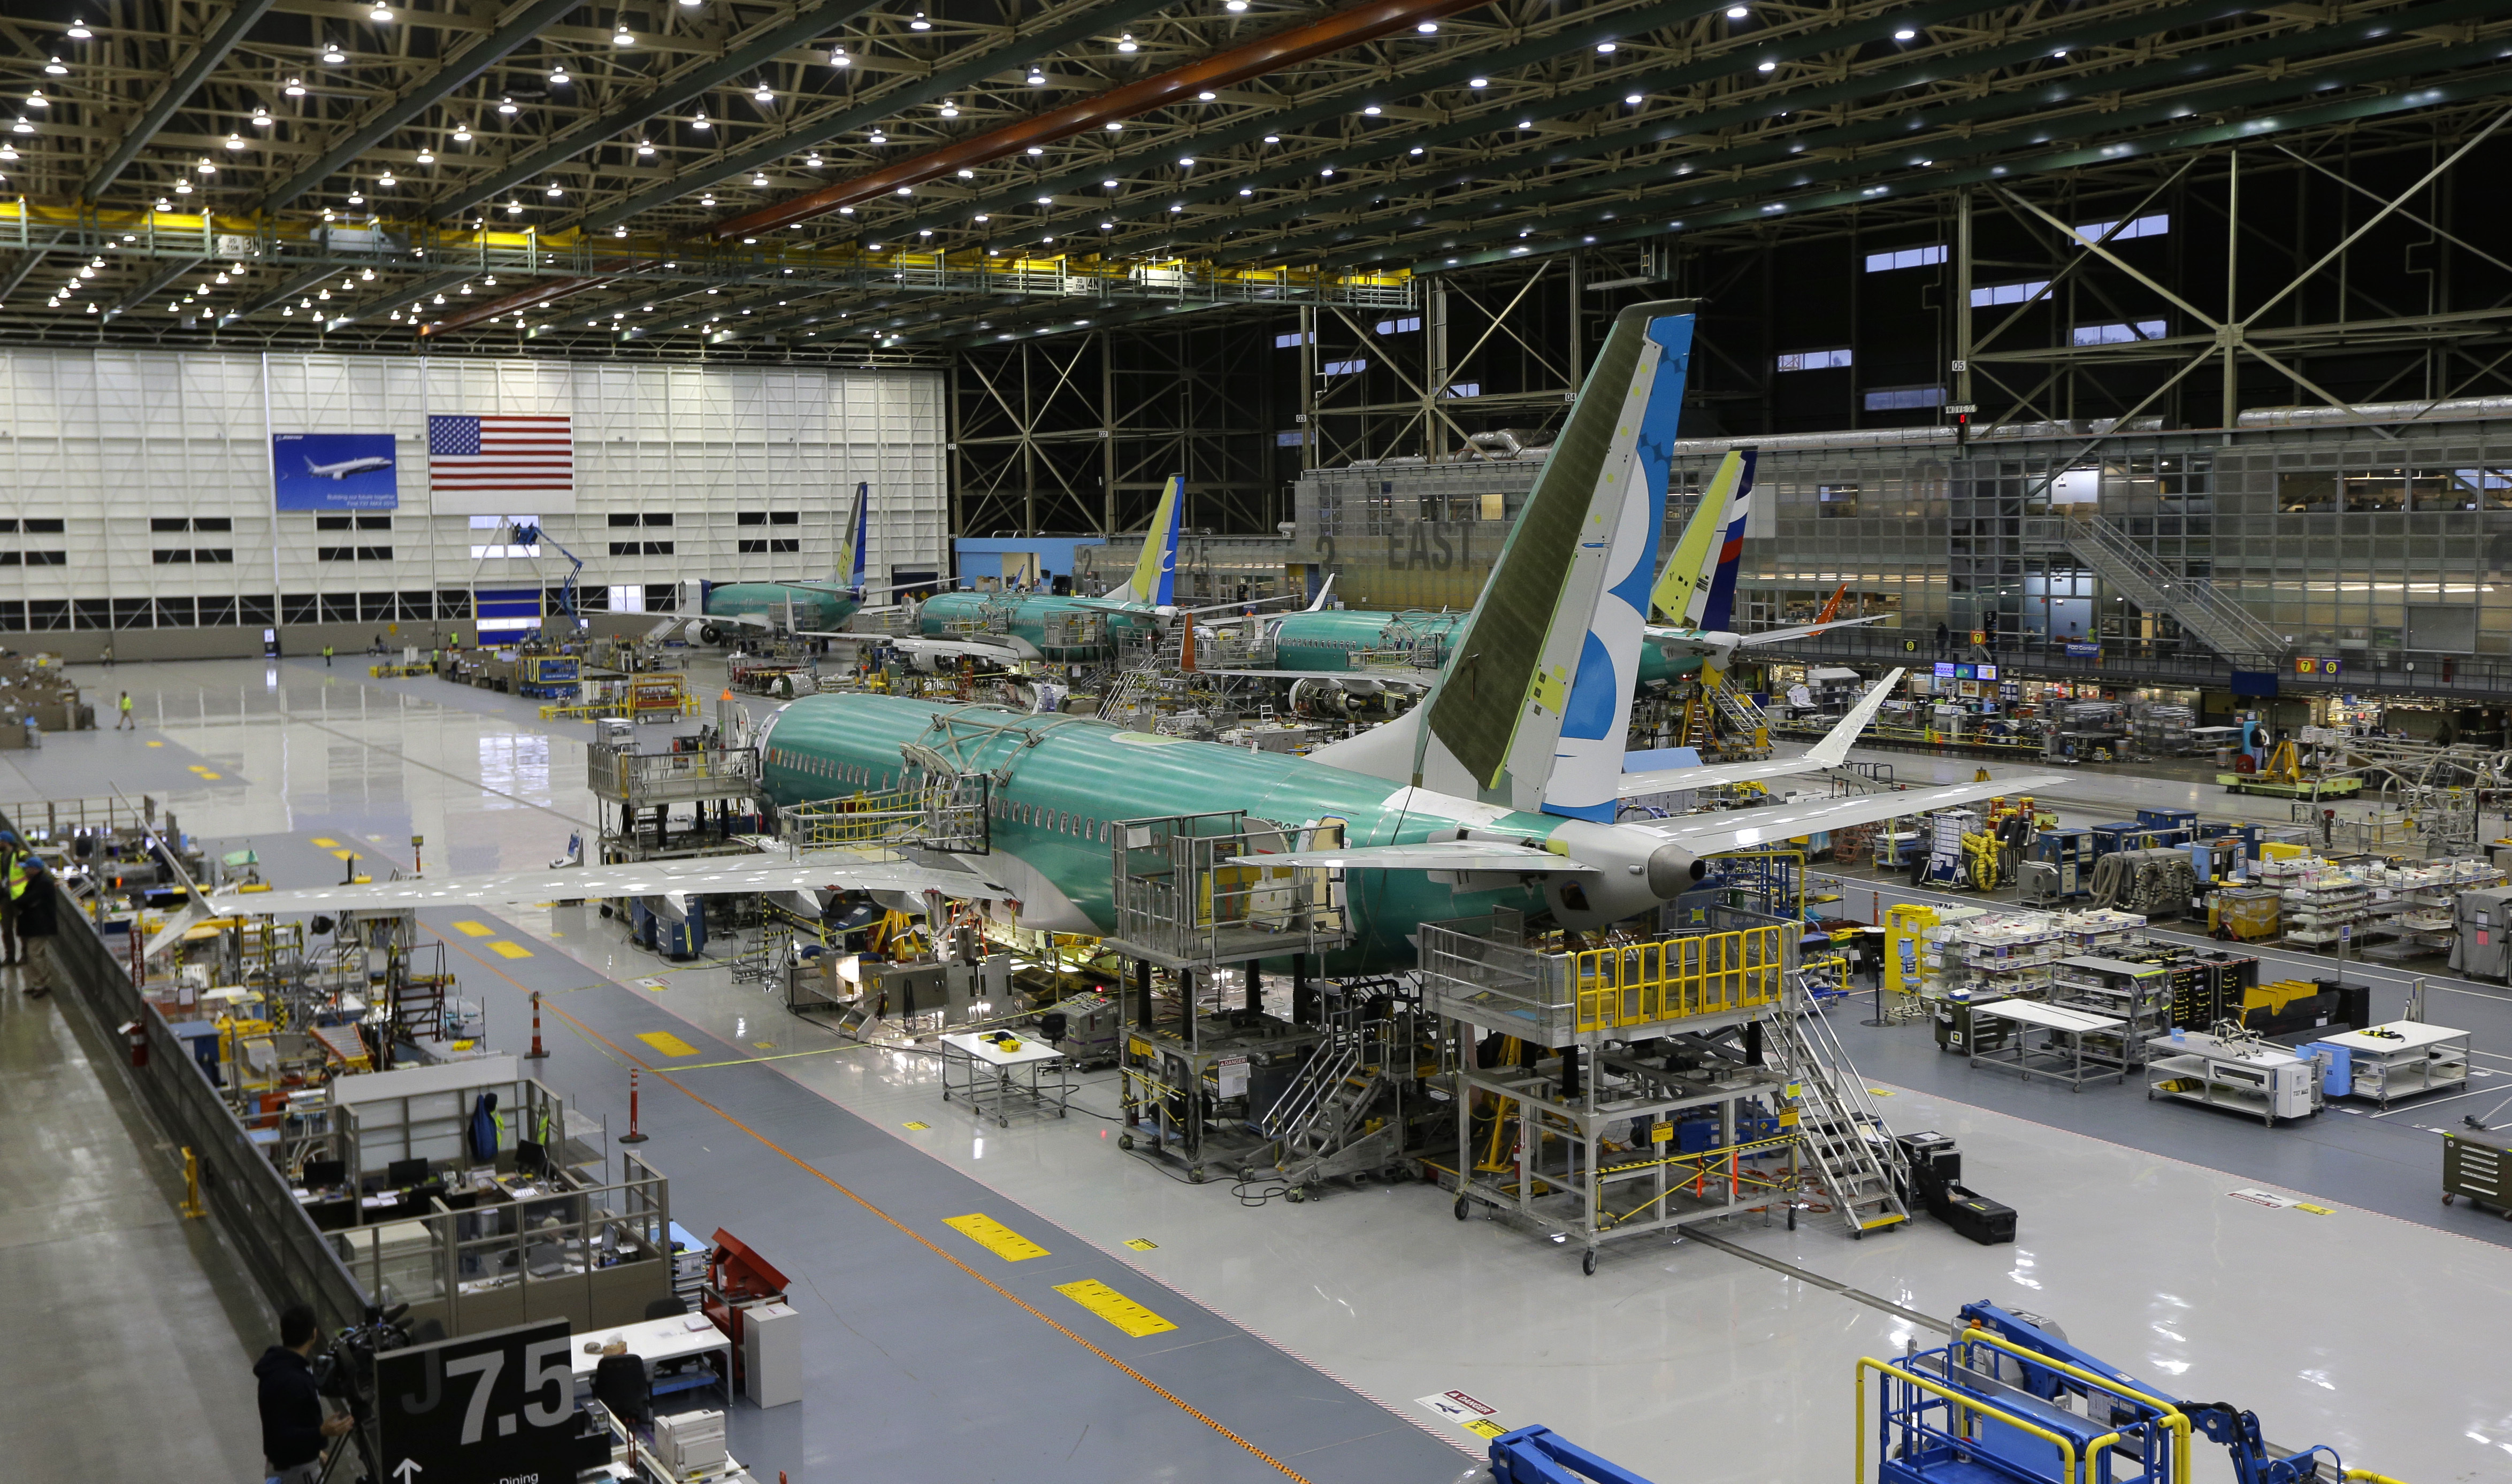 Boeing aims to finish software fix to 737 Max in September